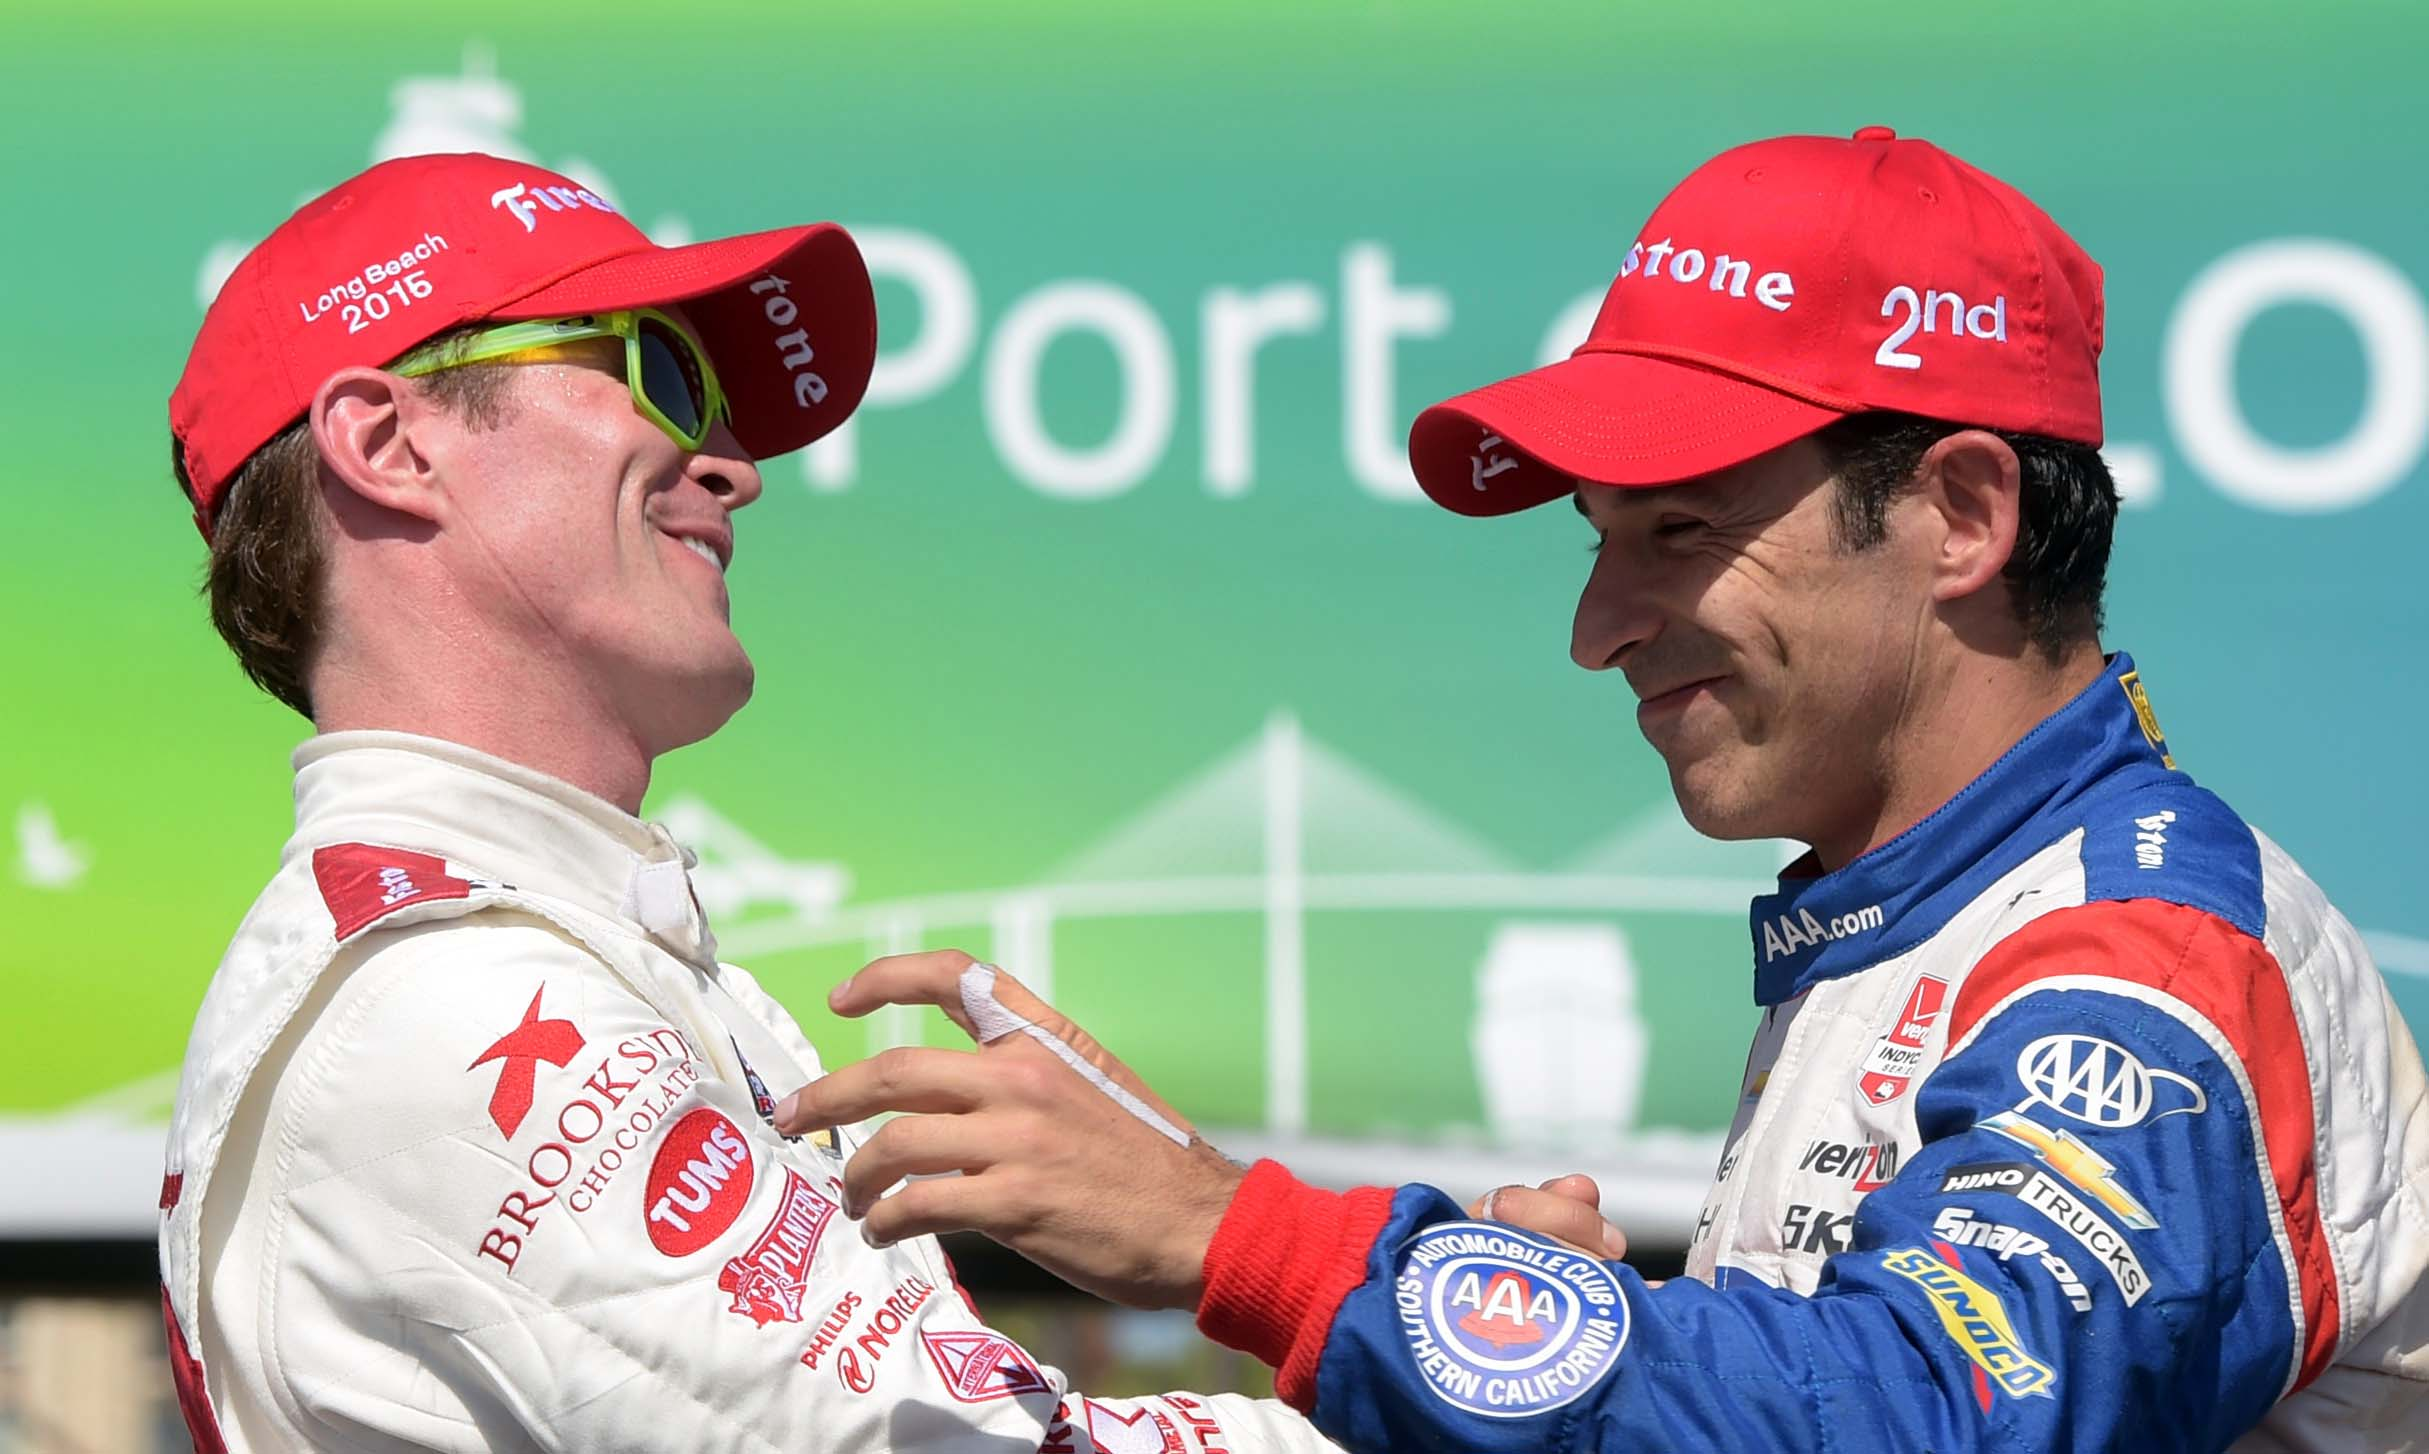 Scott Dixon (left) and Helio Castroneves are among the favorites at the Grand Prix of Alabama. (Kirby Lee, USA TODAY Sports)